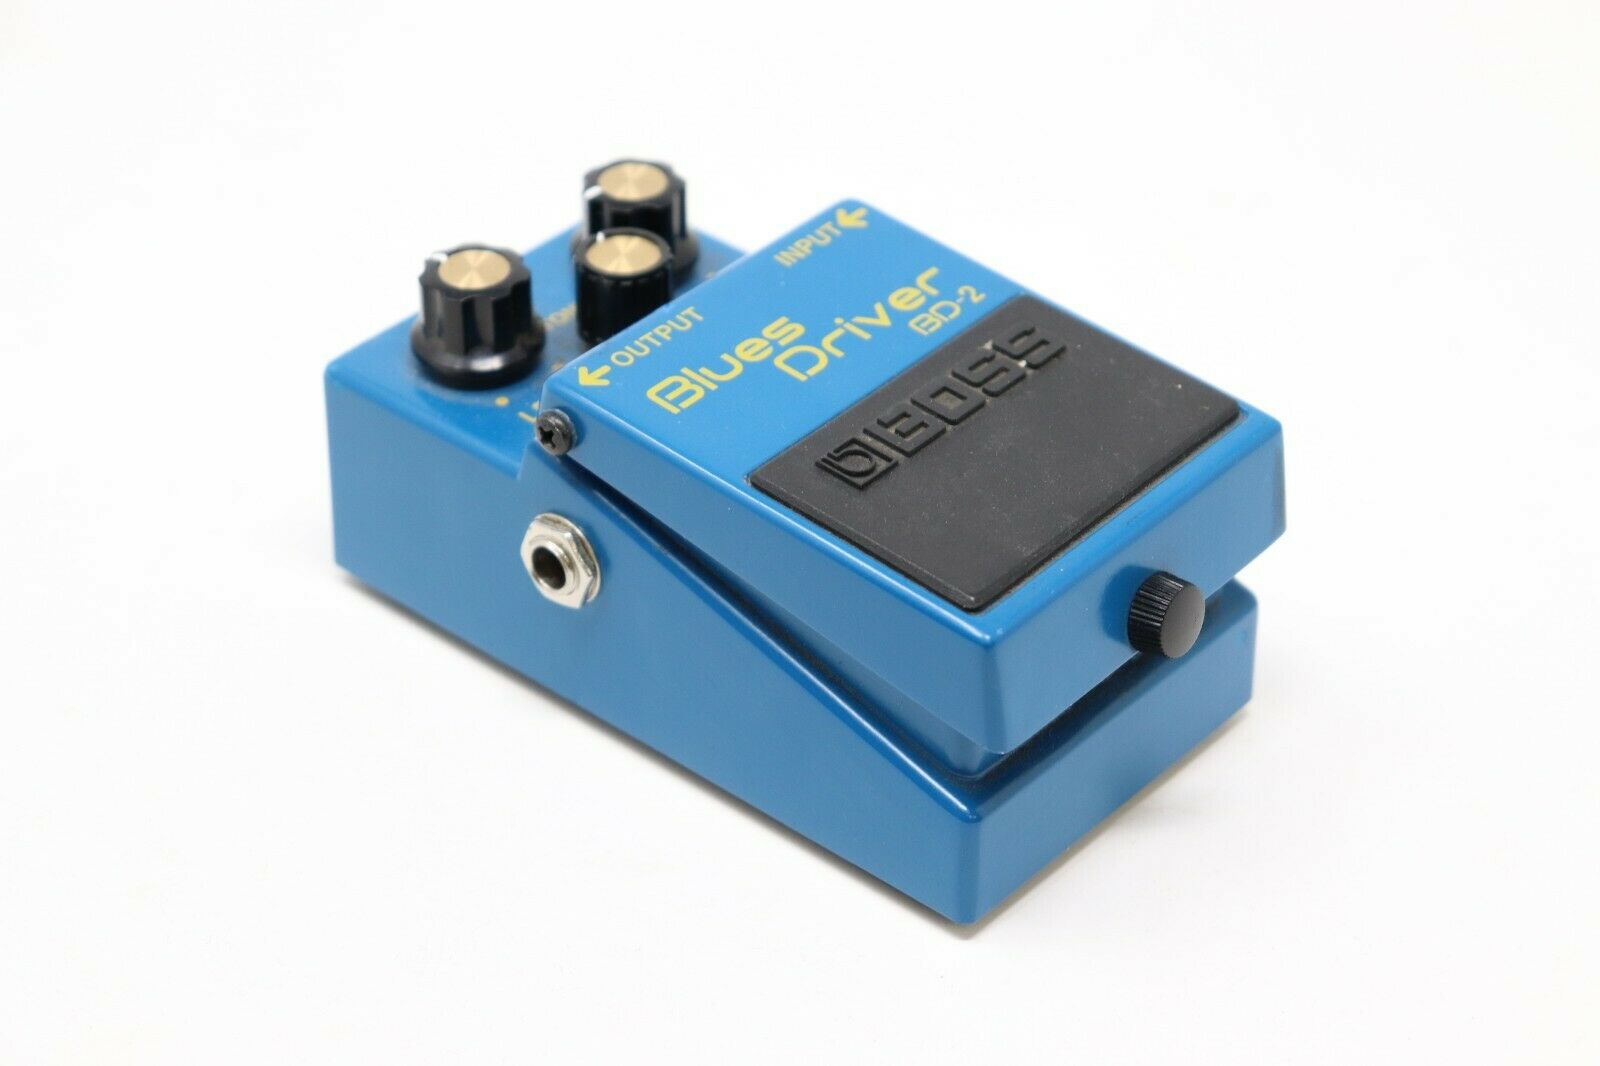 Boss Blues BD2 Driver Distorion Overdrive Guitar Effect Pedal